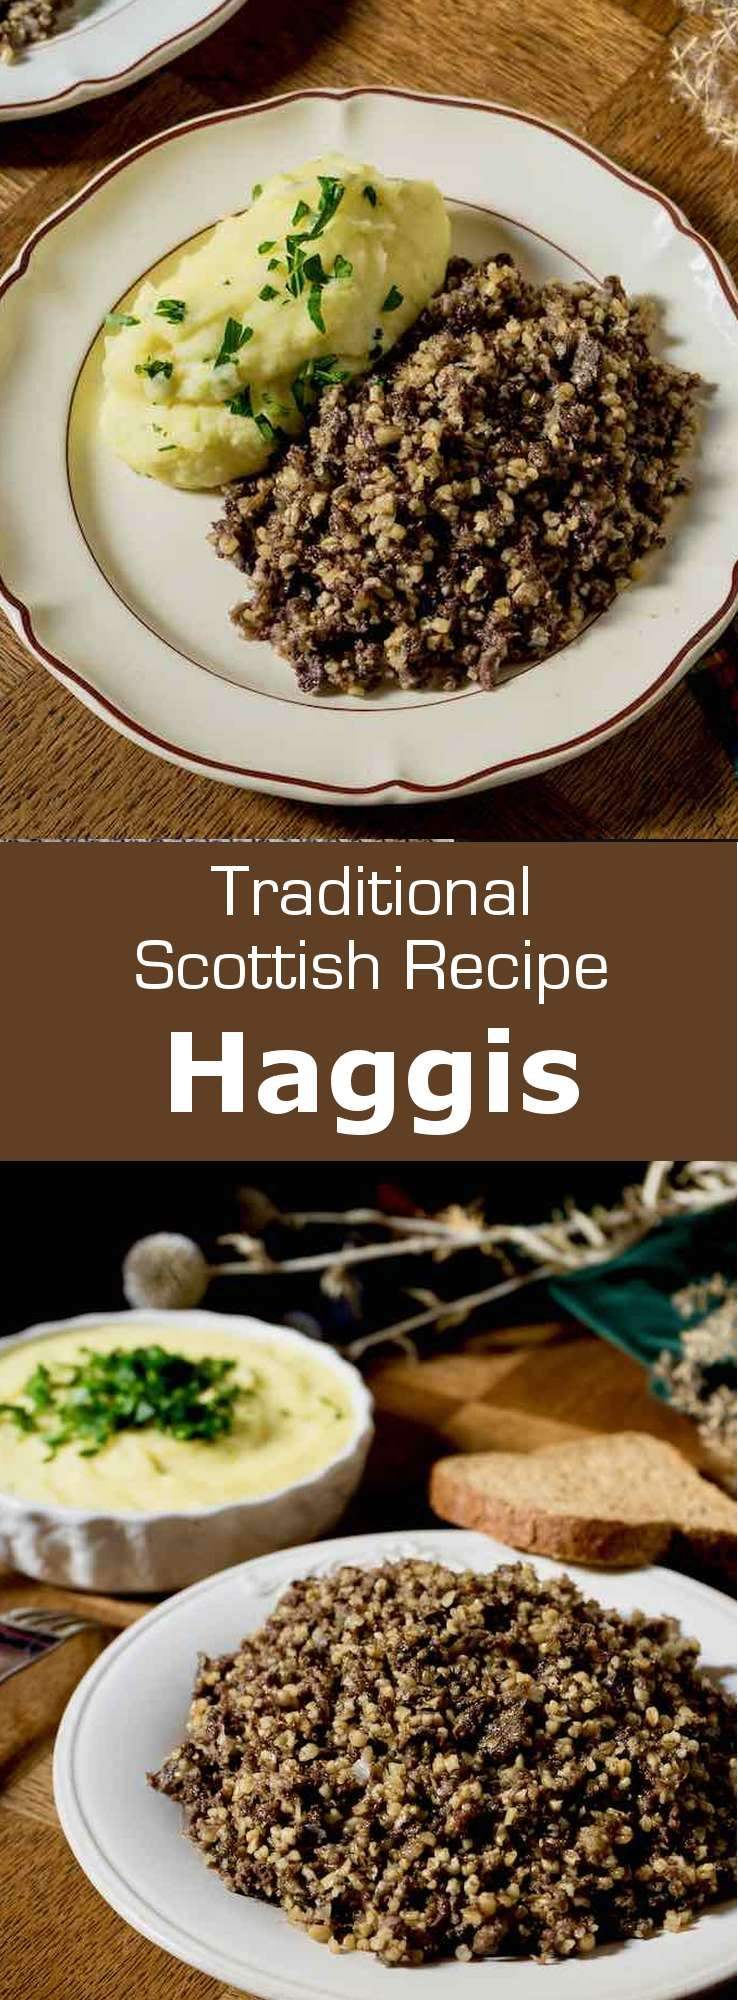 Haggis is a traditional Scottish dish consisting of seasoned and spiced minced sheep's pluck cooked